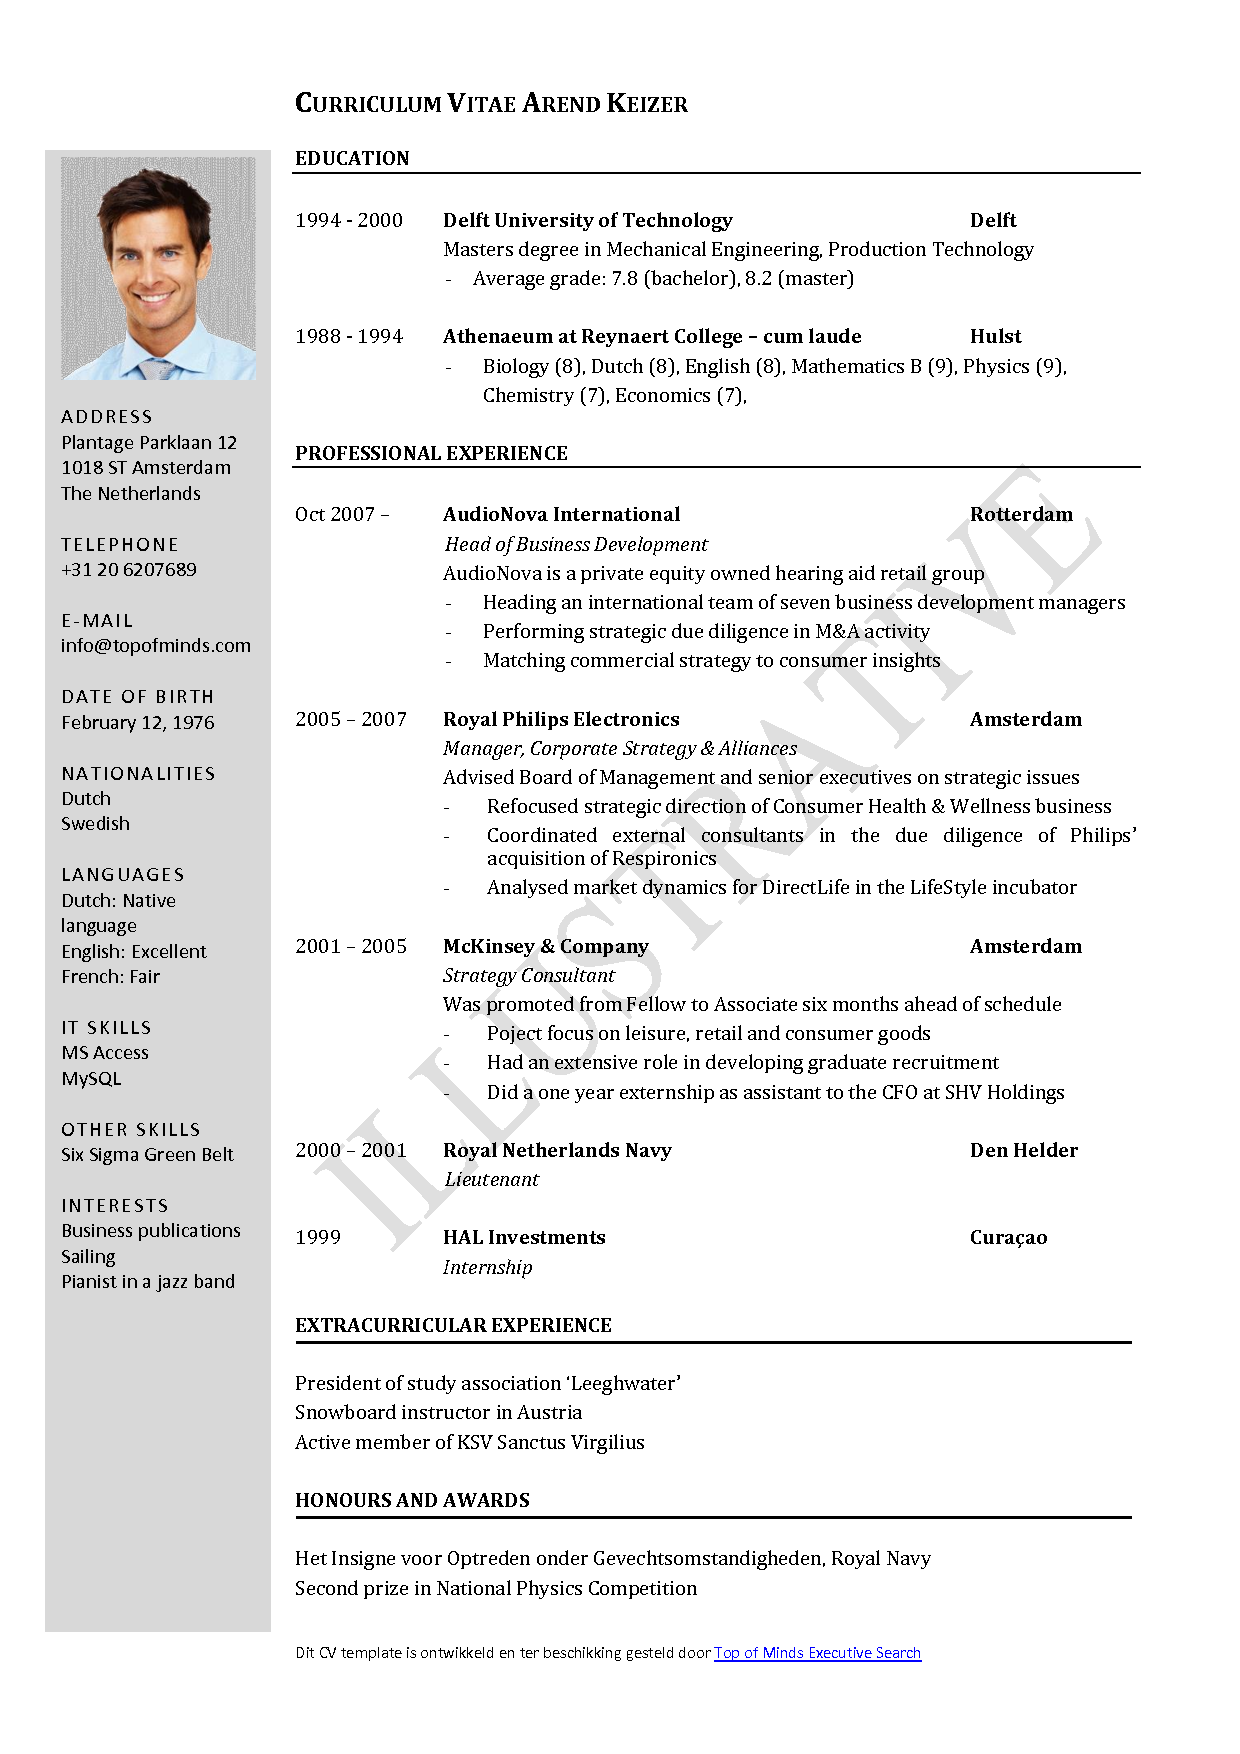 Free curriculum vitae template word download cv template when free curriculum vitae template word download cv template yelopaper Images